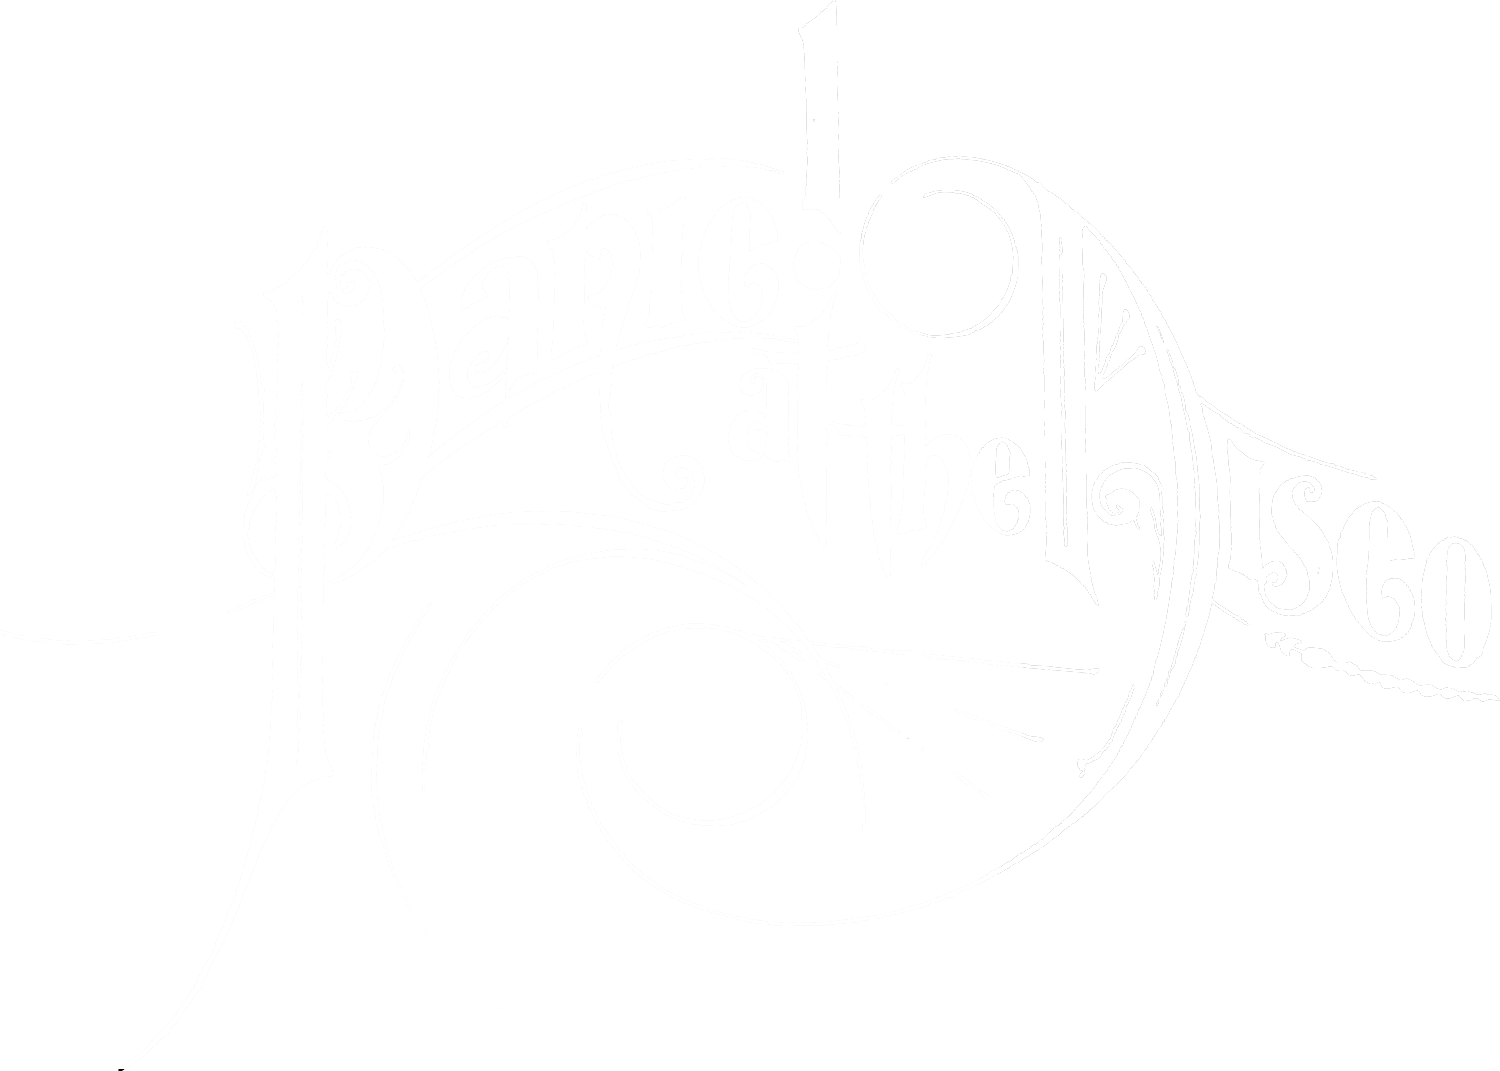 Panic! At the Disco Logo PNG by CheapThrillsGlmrKlls on ...